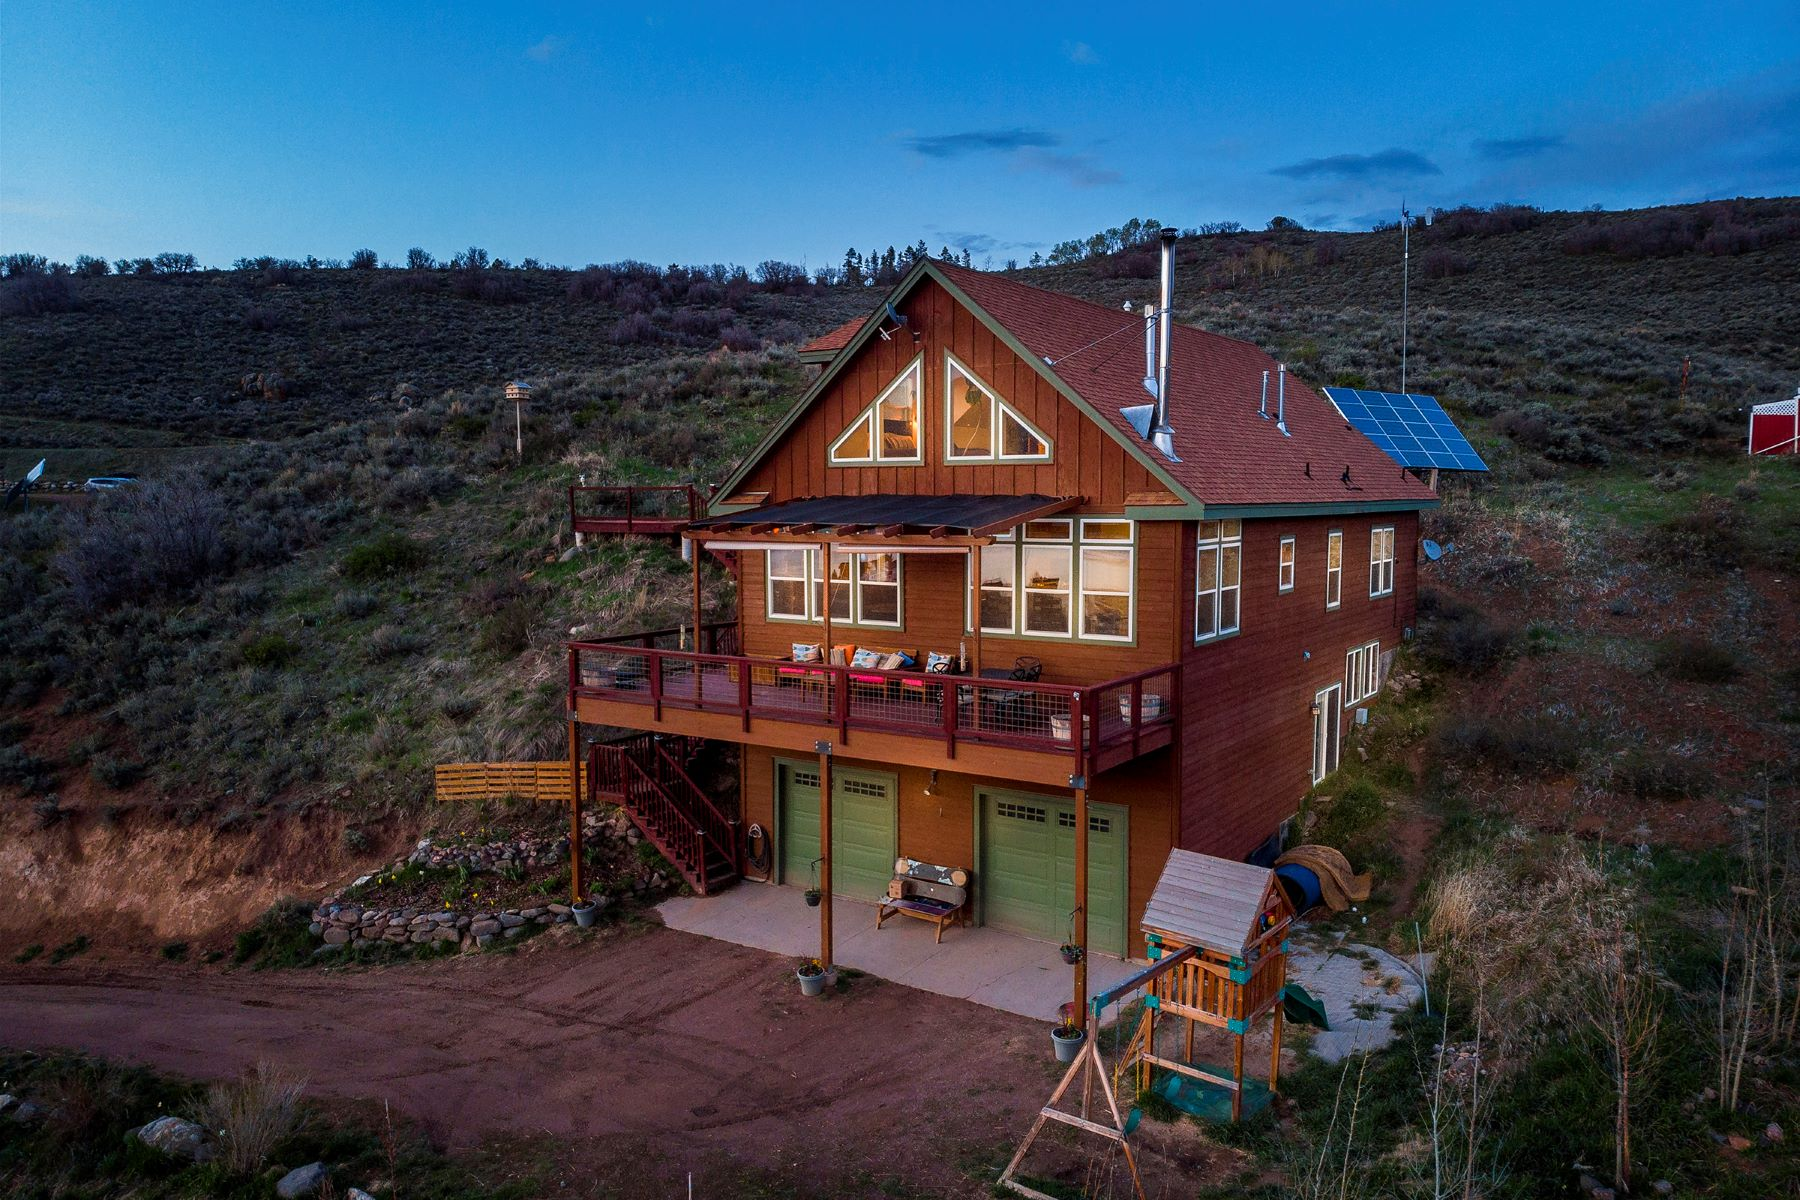 Single Family Homes for Active at Lake Life With Stunning Views 31580 Shoshone Way Oak Creek, Colorado 80467 United States